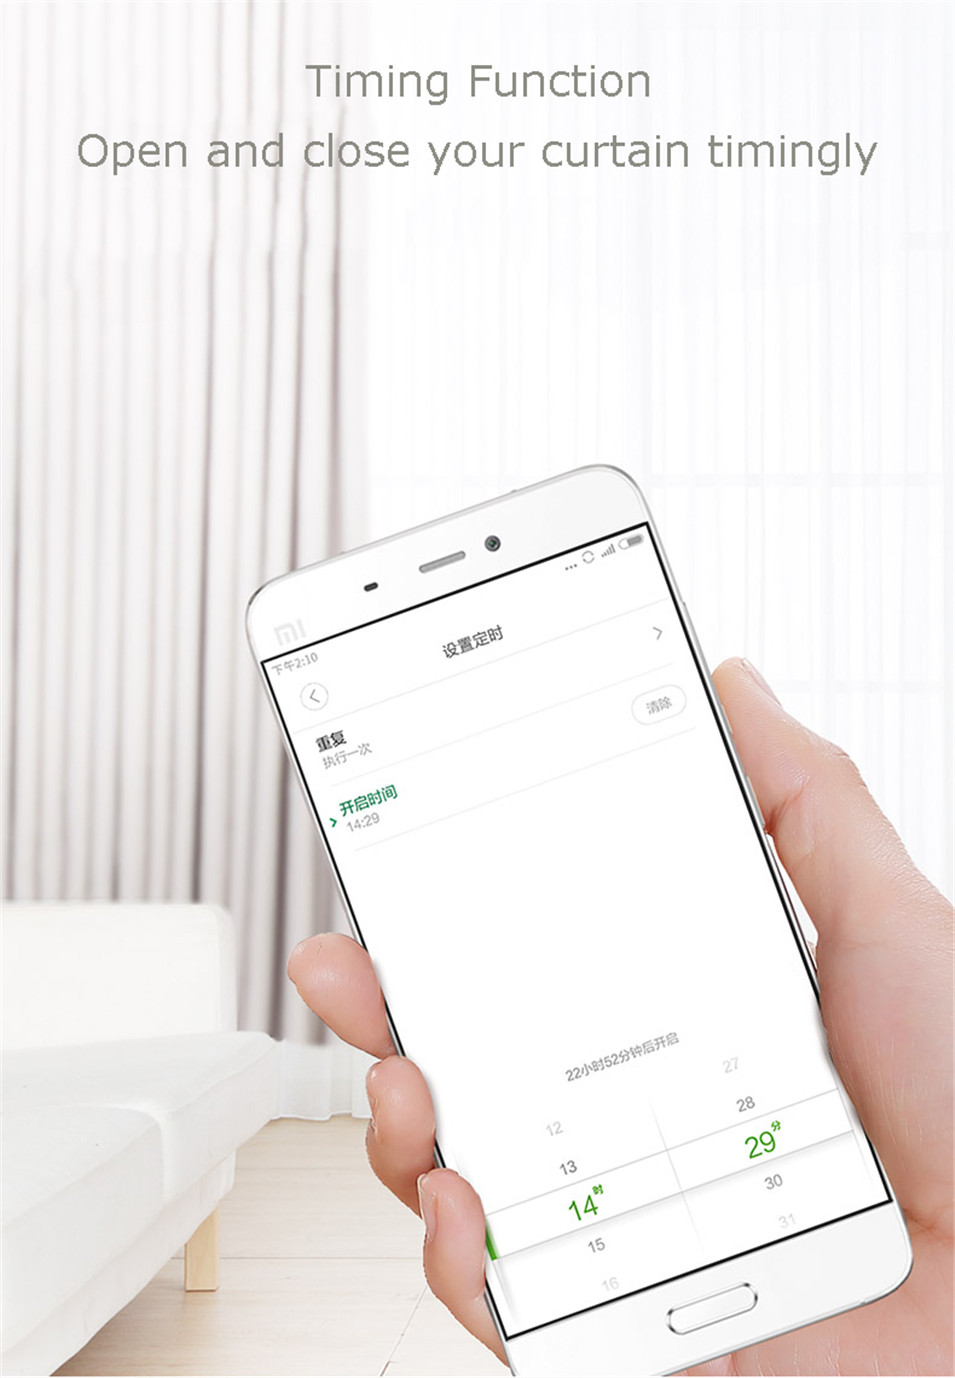 Original Xiaomi Aqara Curtain Motor,Zigbee Silent Motor,2.4GHz WIFI Wireless Control,Work with XiaomiMijia Gateway,Mi Home App-6